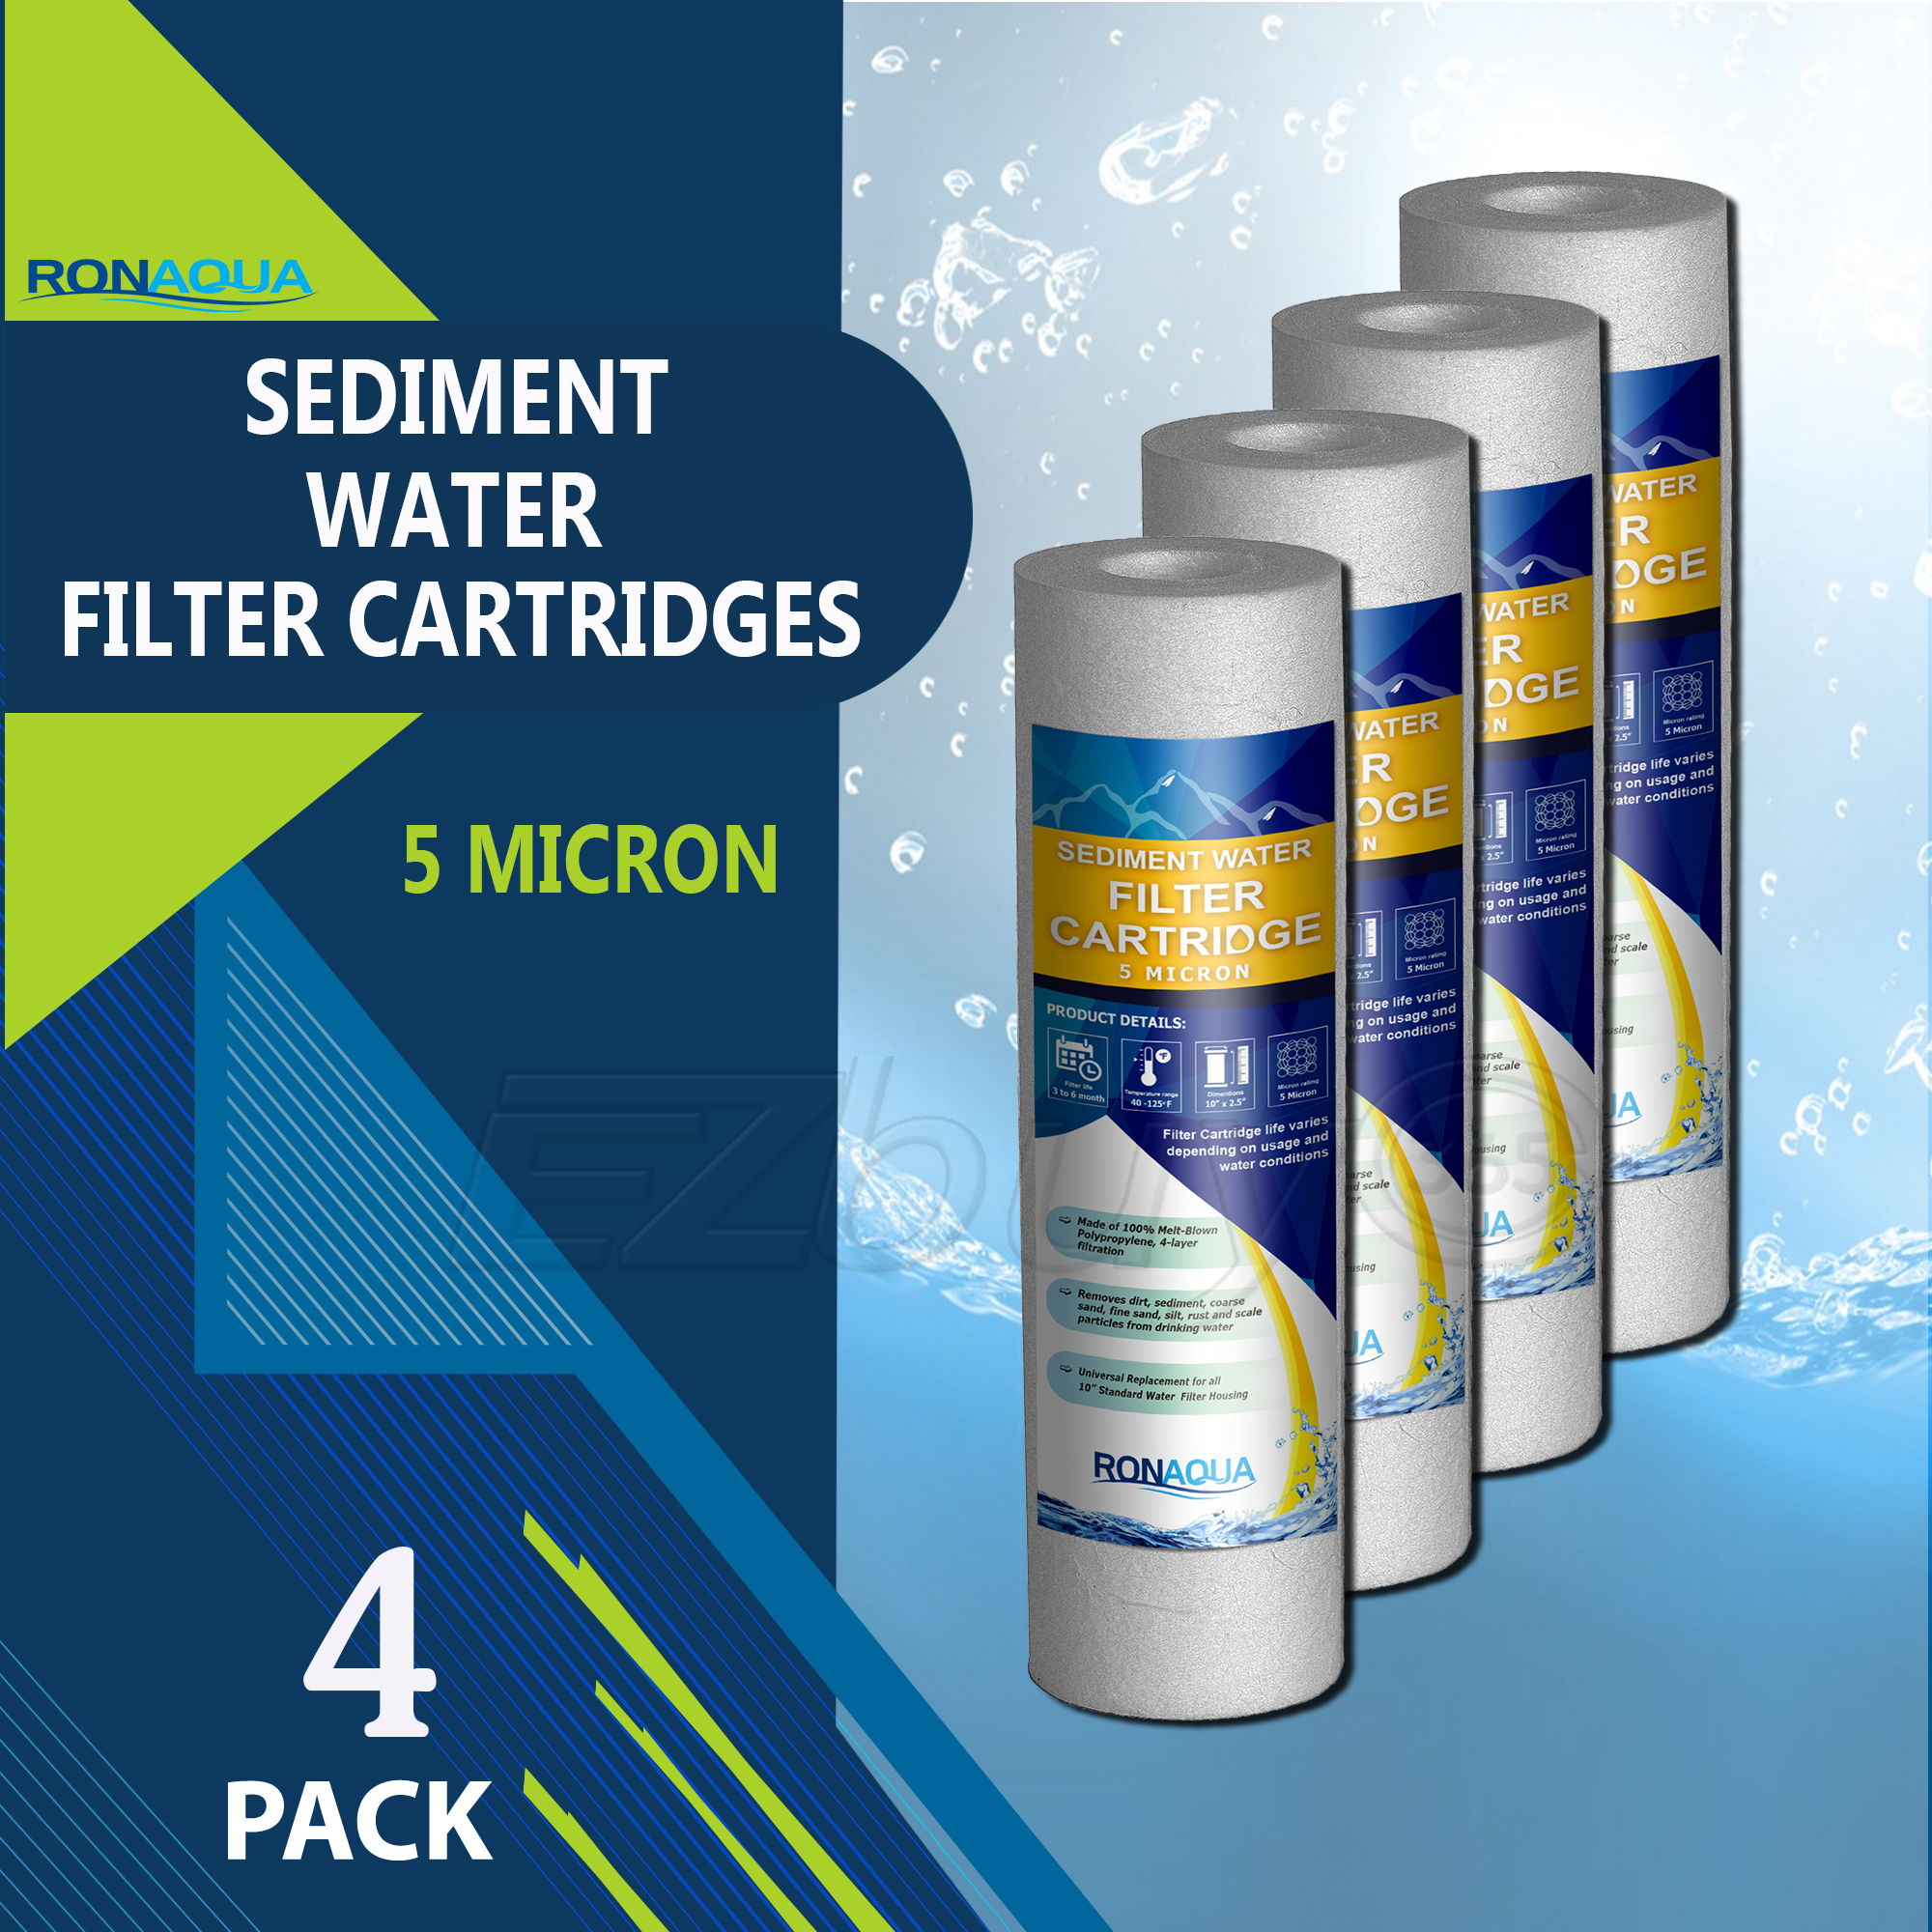 "Sediment Water Filter Cartridge by Ronaqua 10""x 2.5"", Four Layers of Filtration, Removes Sand, Dirt, Silt, Rust, made from Polypropylene (4 Pack, 5 Micron)"